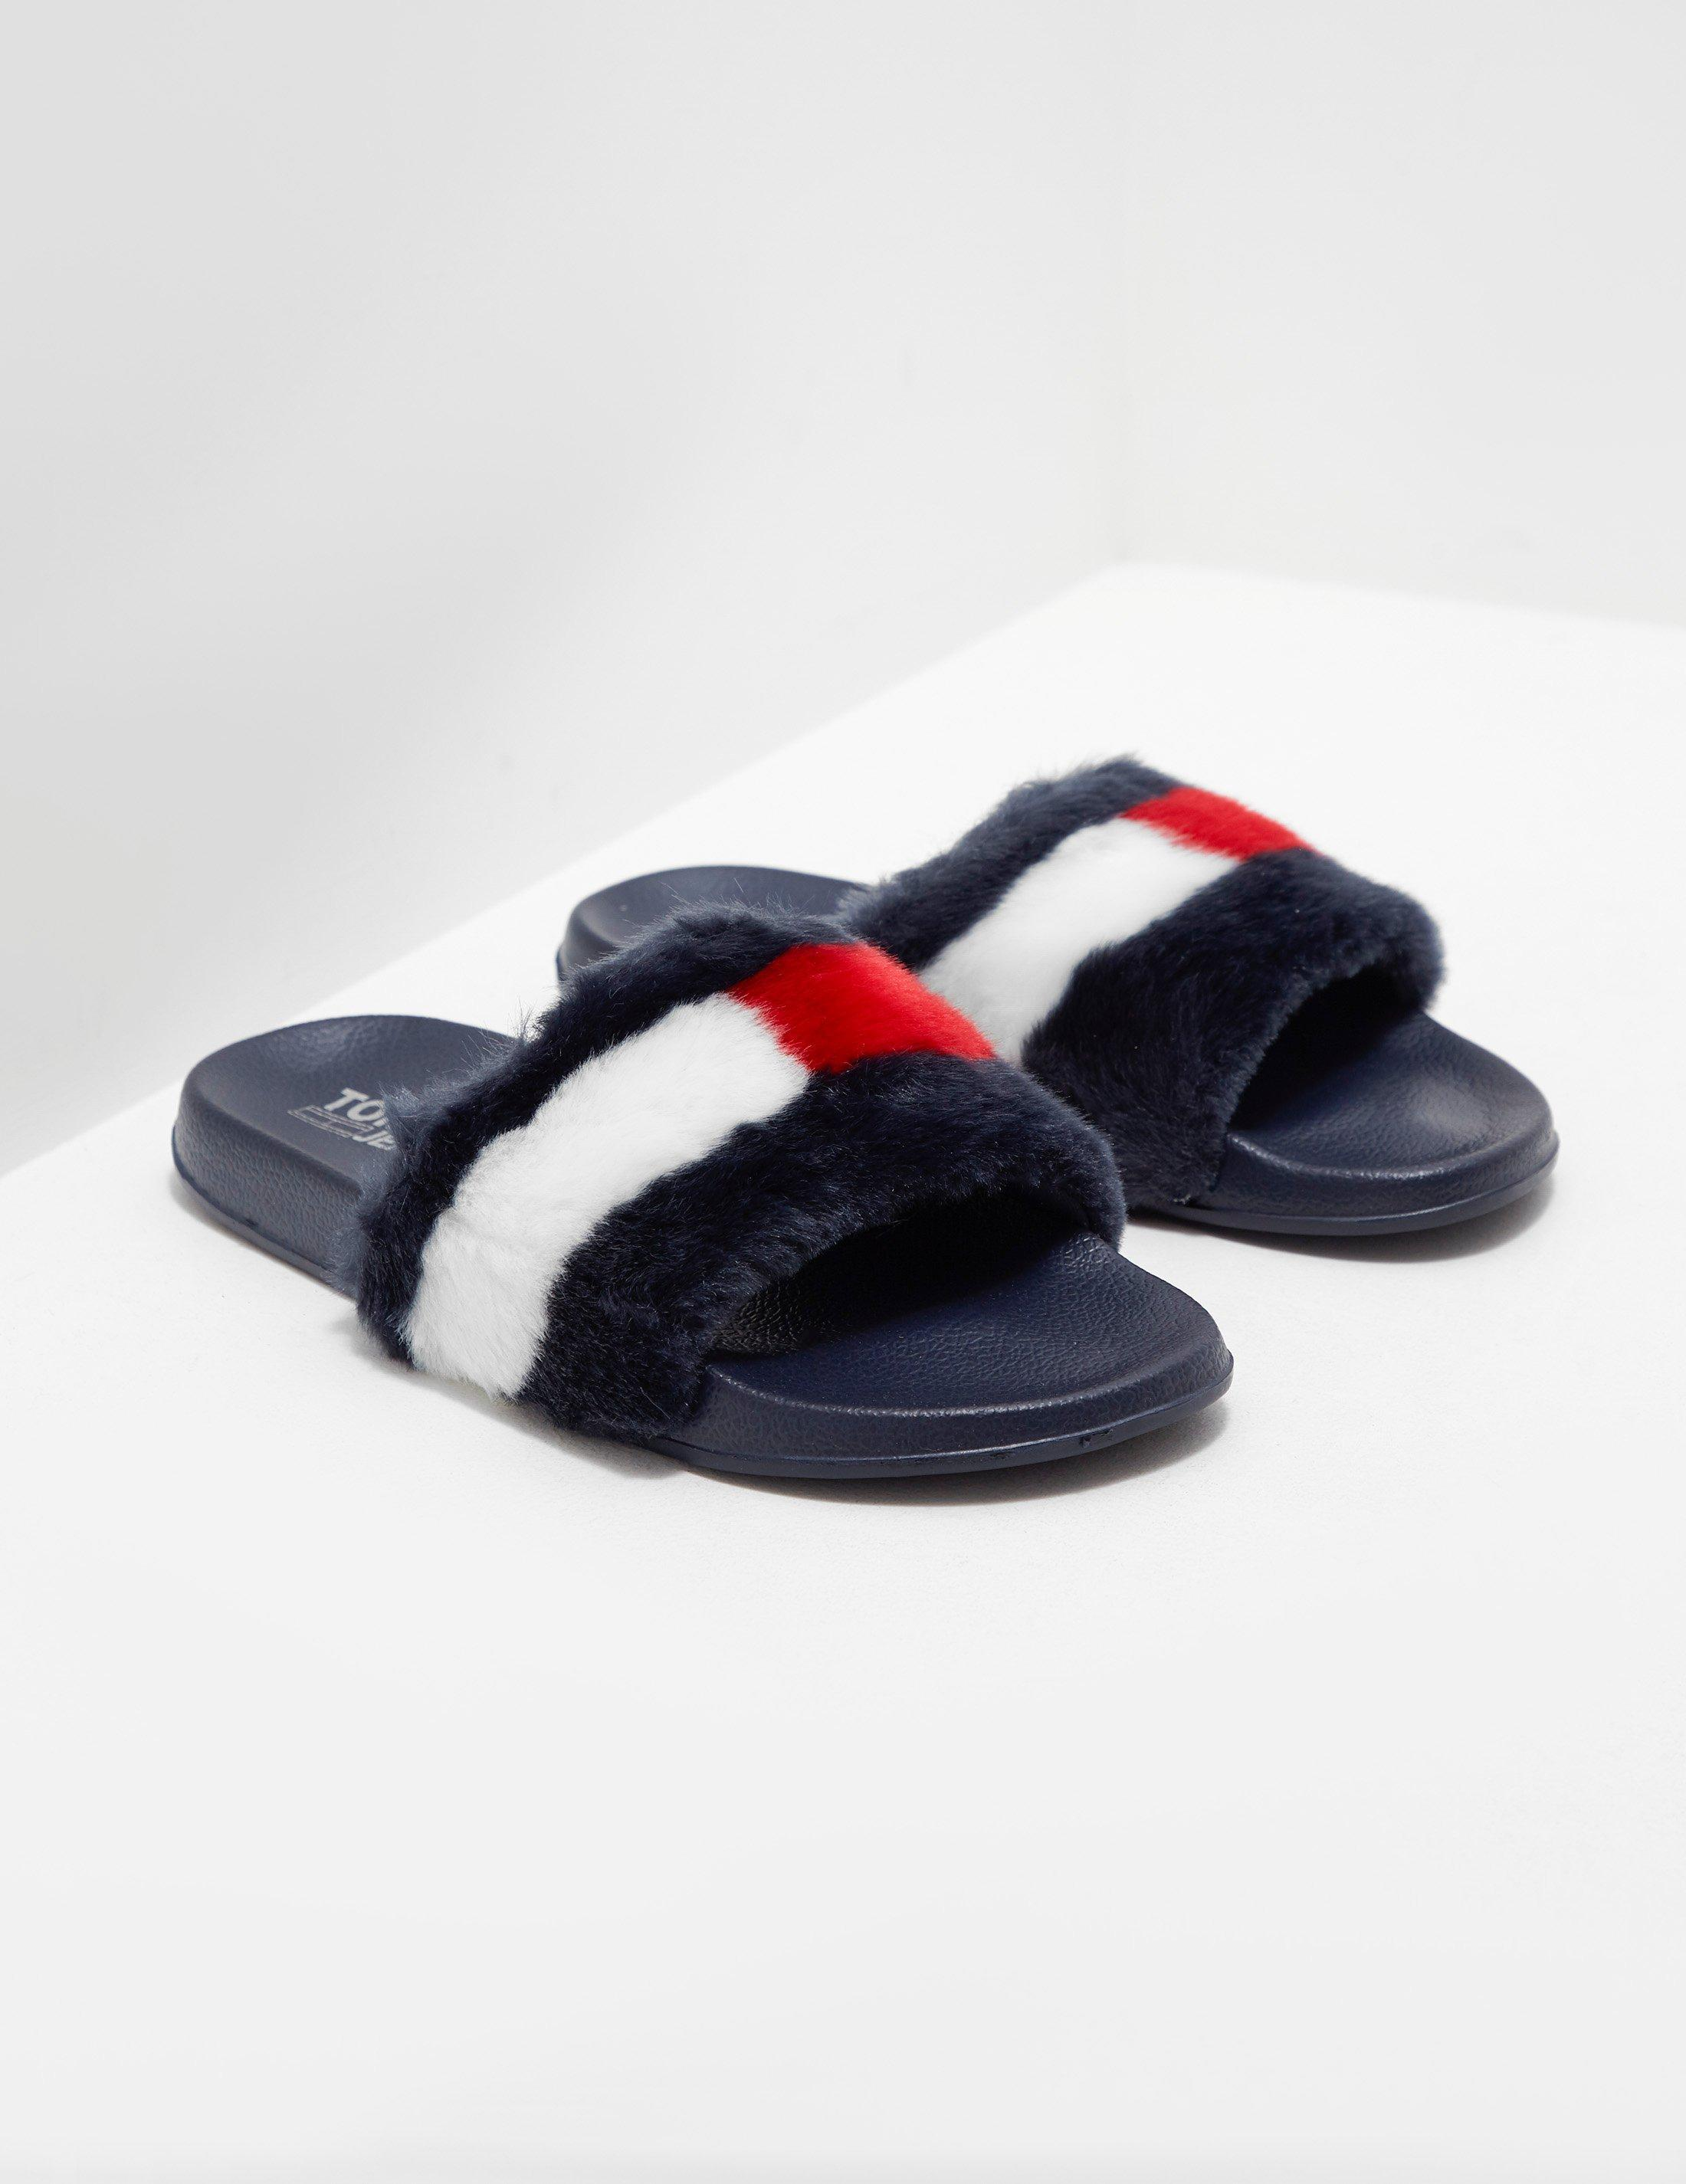 4d2d6e6bceb3 Lyst - Tommy Hilfiger Funny Fur Pool Slides in Blue